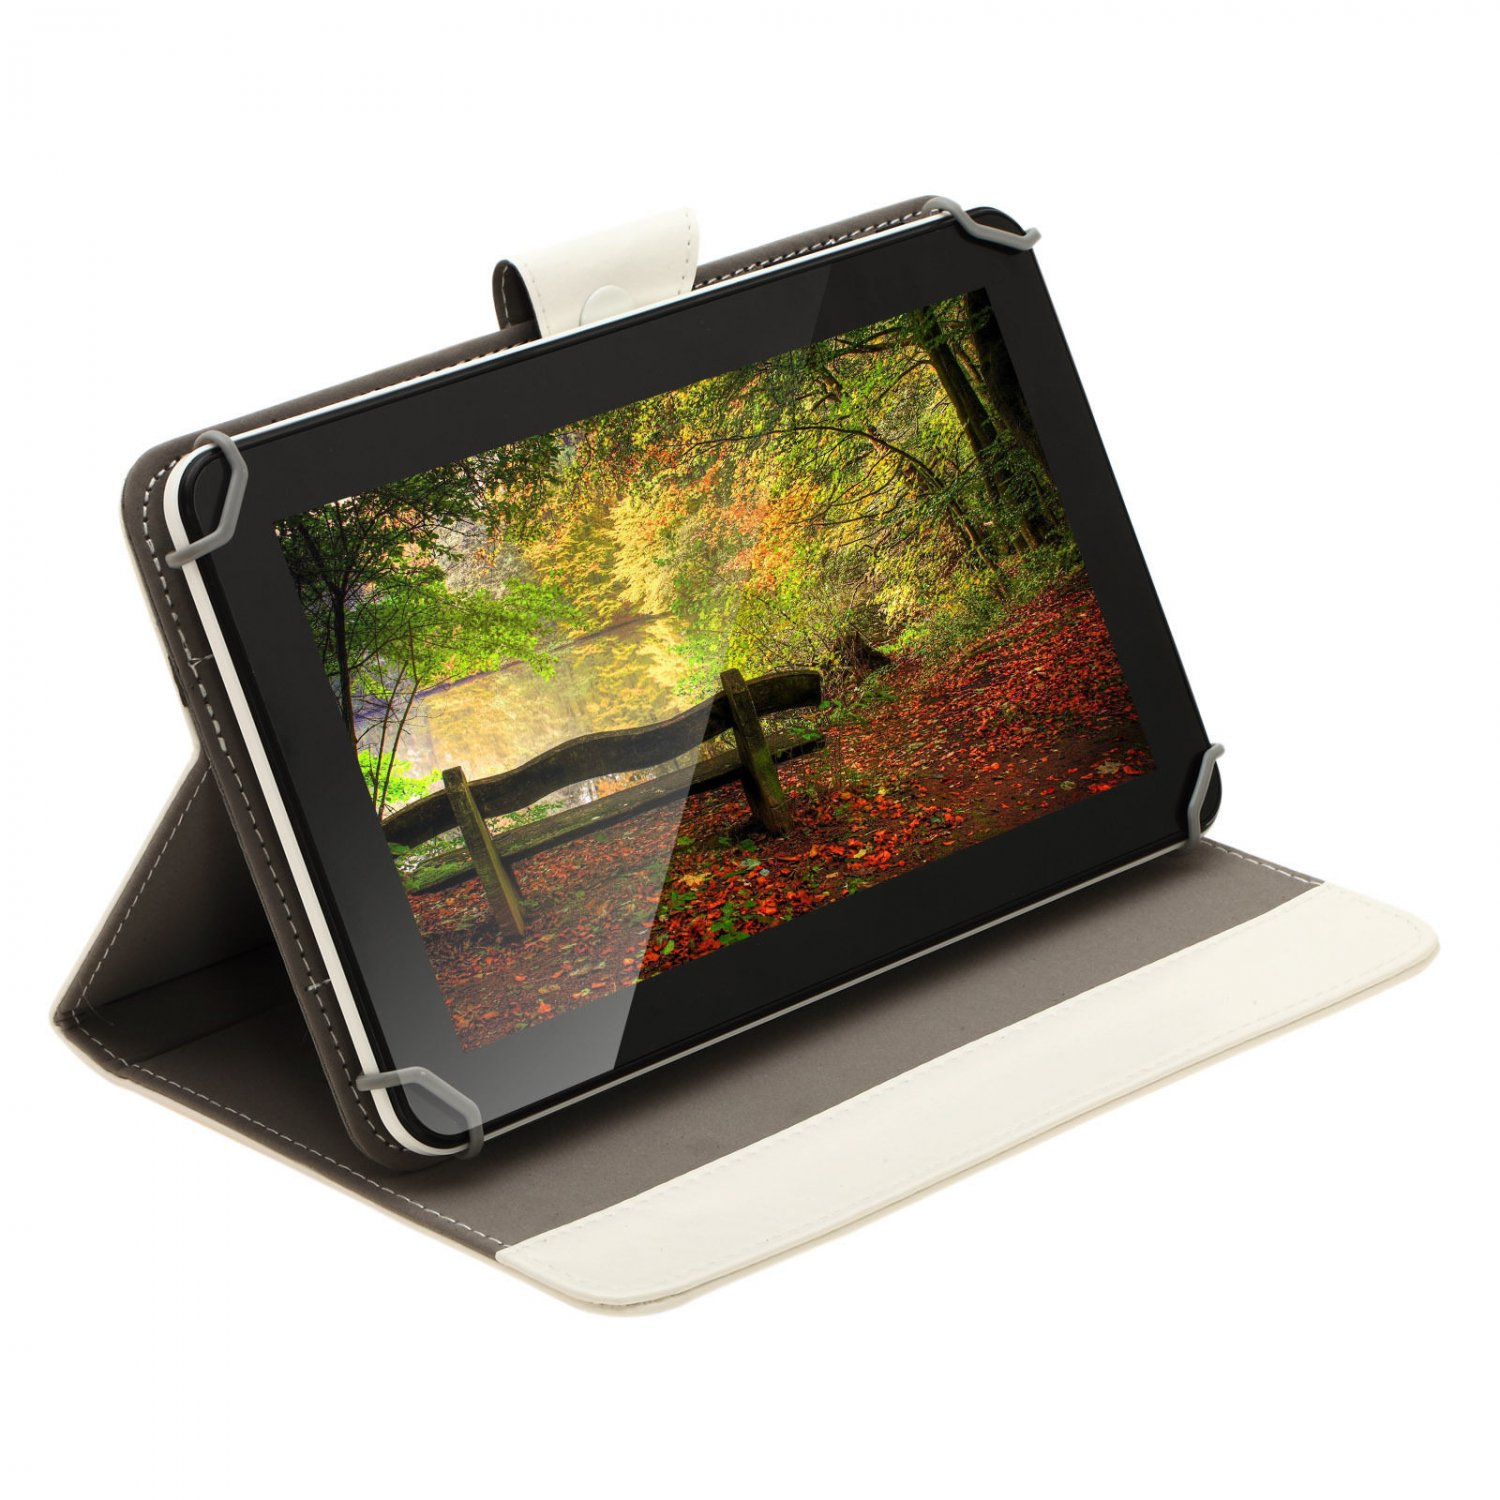 """IRULU 9"""" Tablet PC 16GB Android 4.2 Dual Core/Camera 800x480 WiFi w/White Case"""